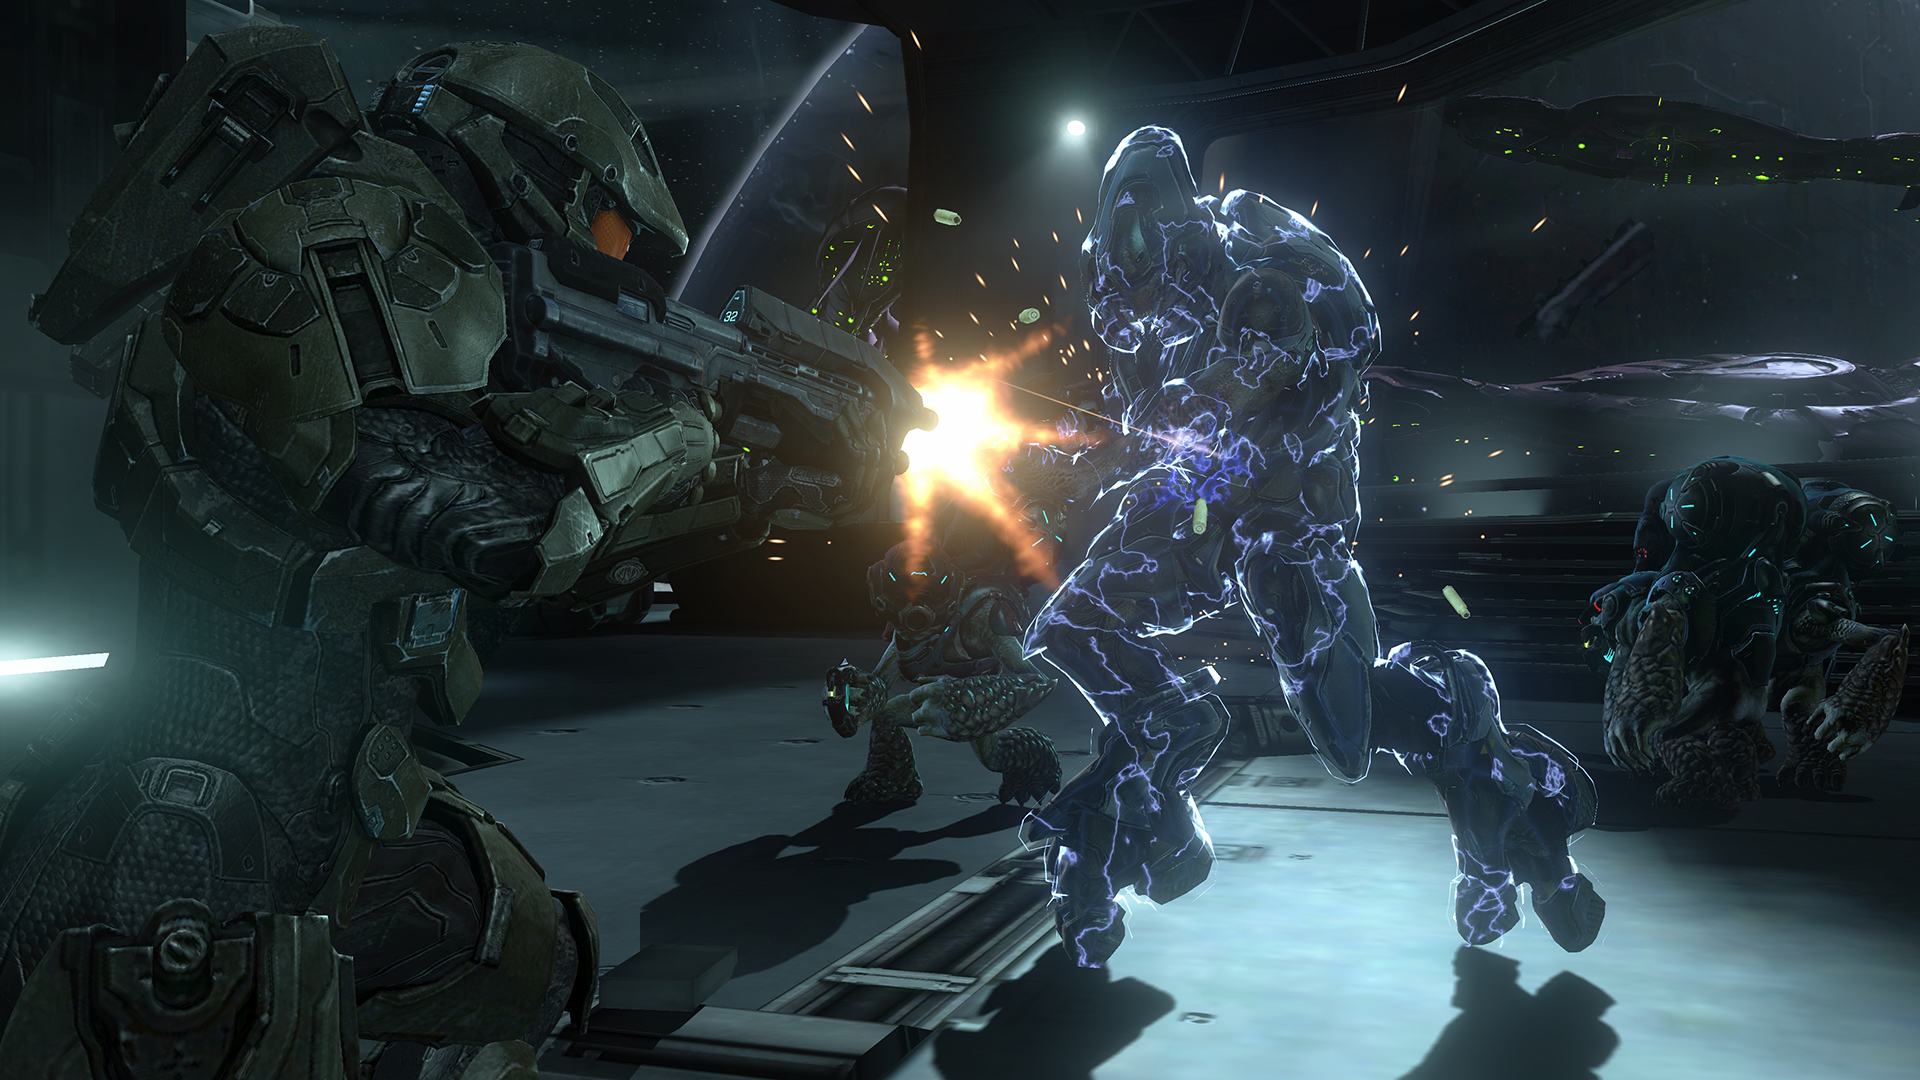 Halo 4 games halo official site - Halo 4 pictures ...